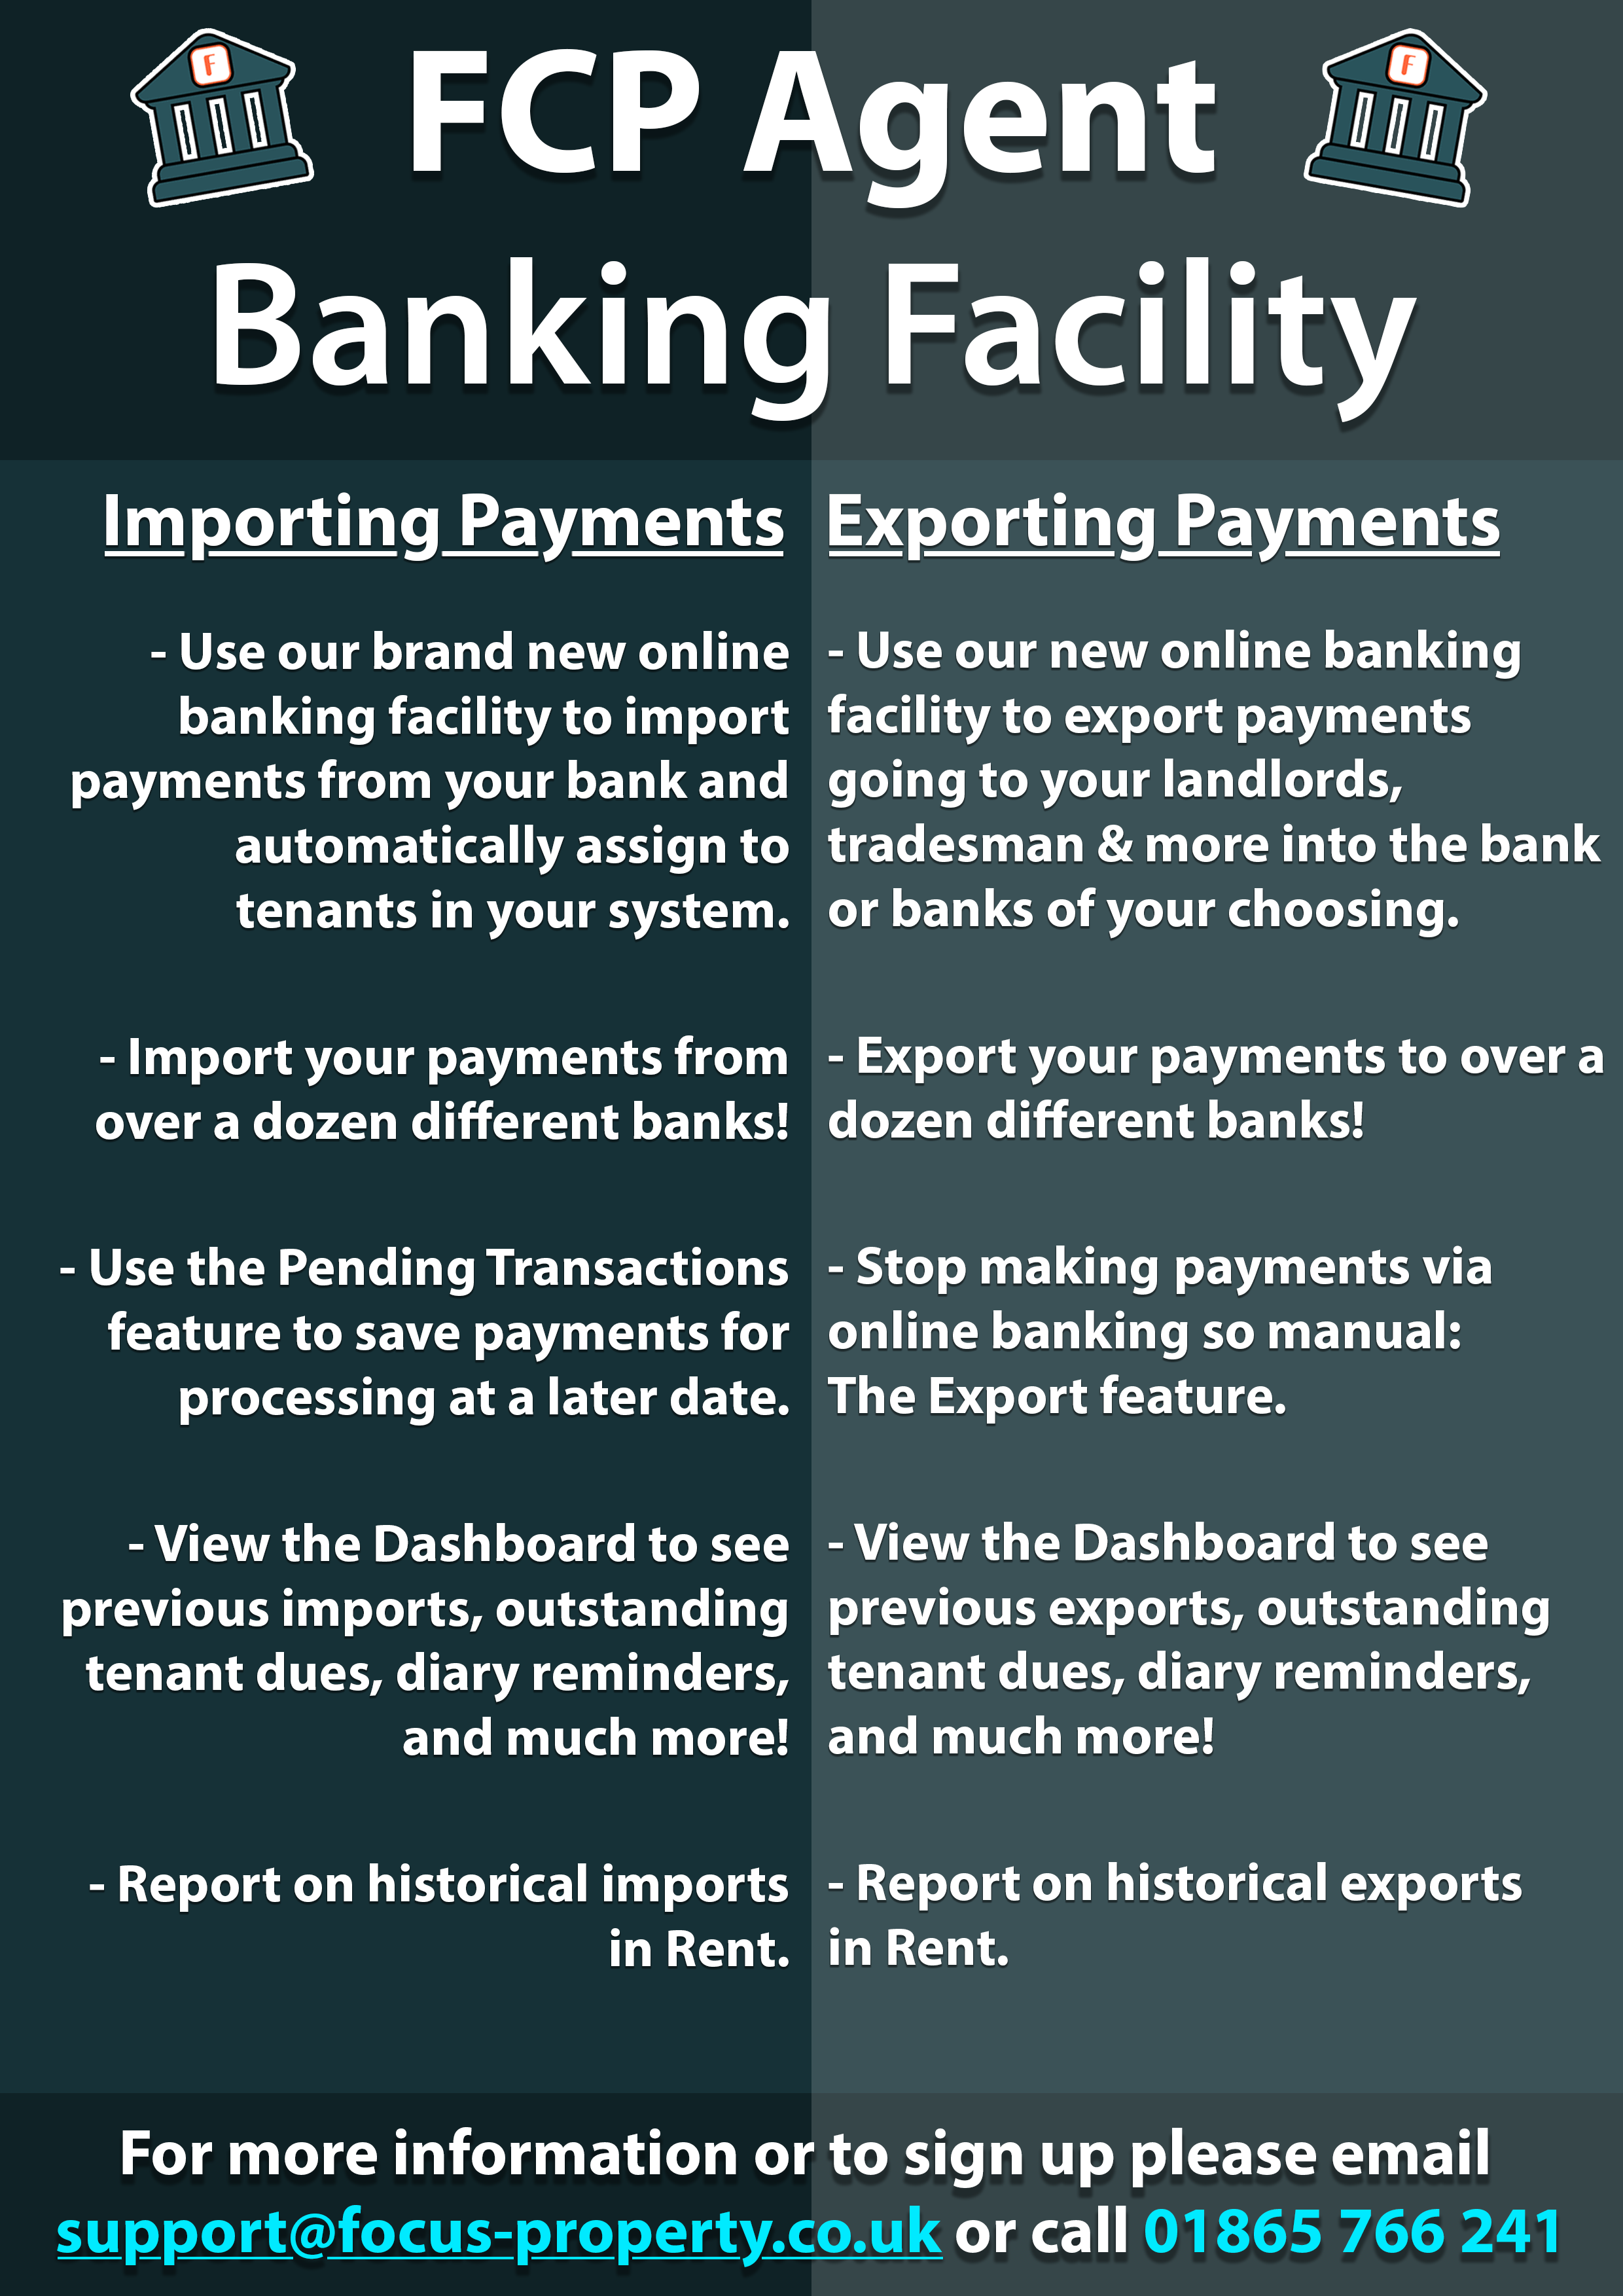 FCP Agent Banking Facility